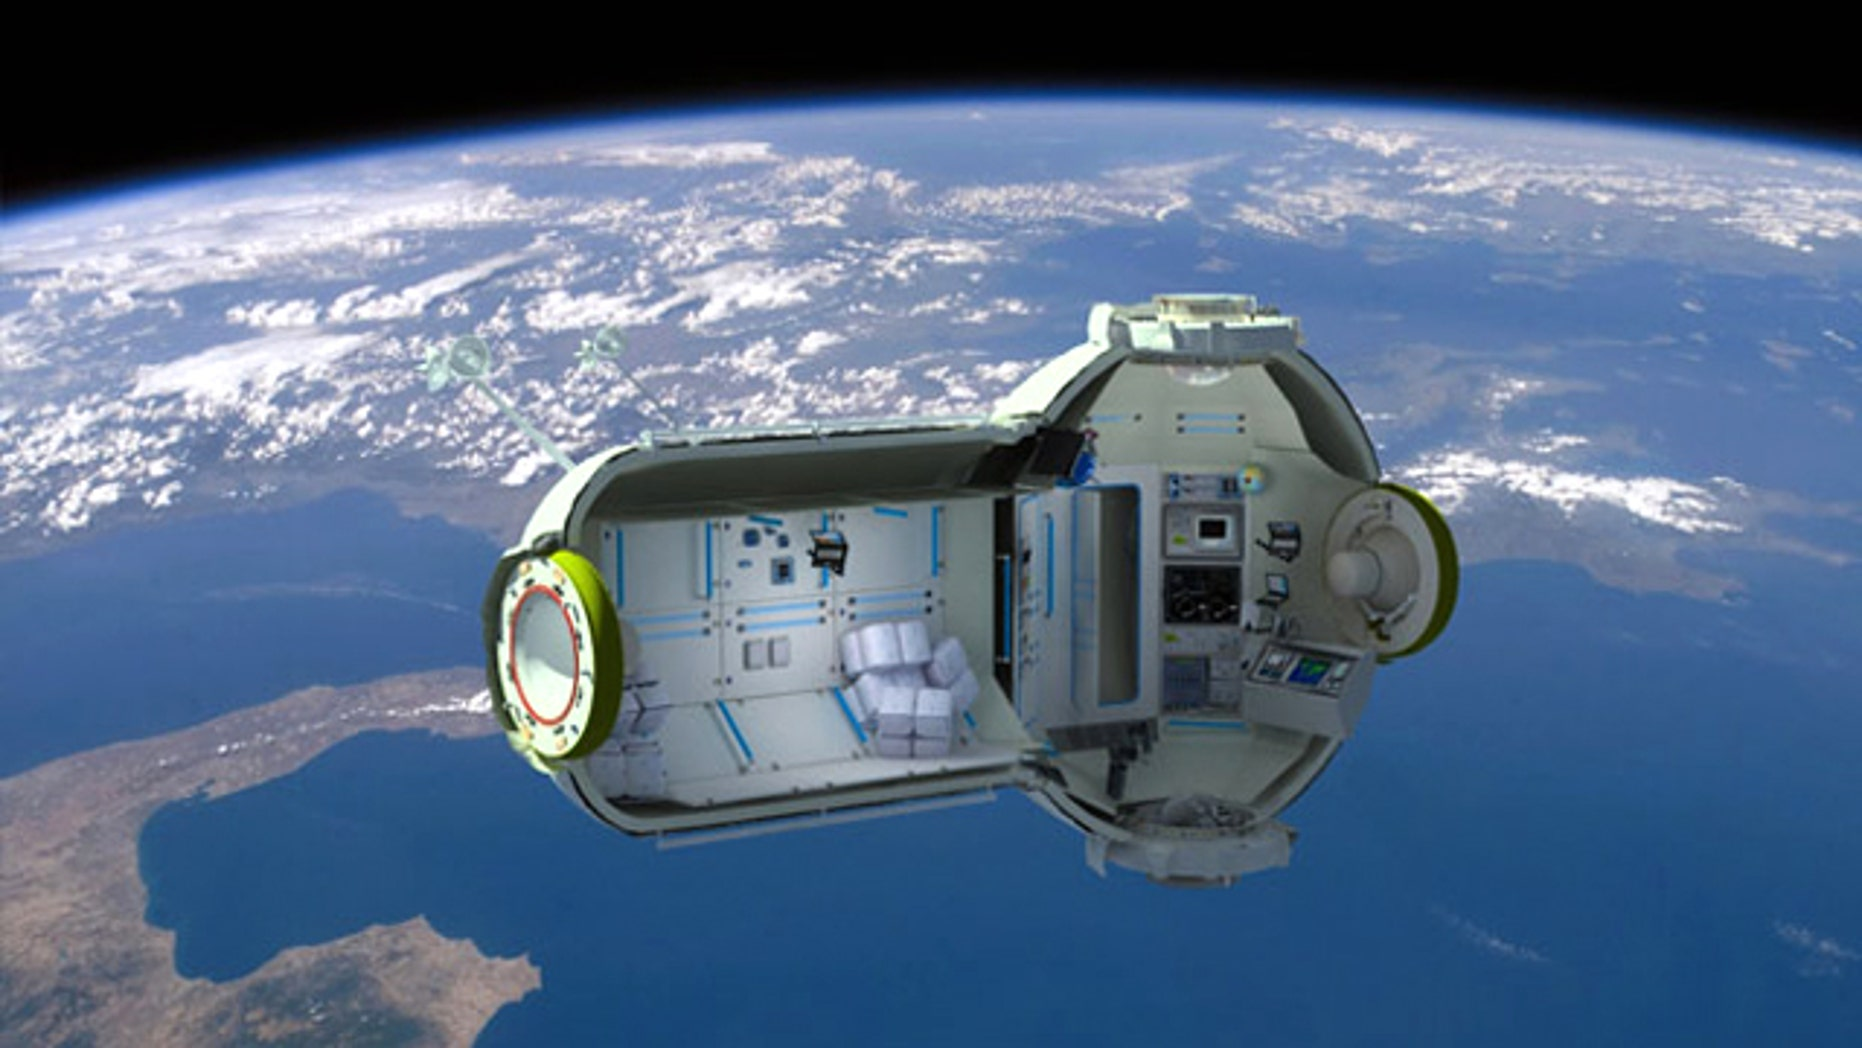 A cross-section of the planned Commercial Space Station, as envisioned by Russian companies Orbital Technologies and RSC Energia.